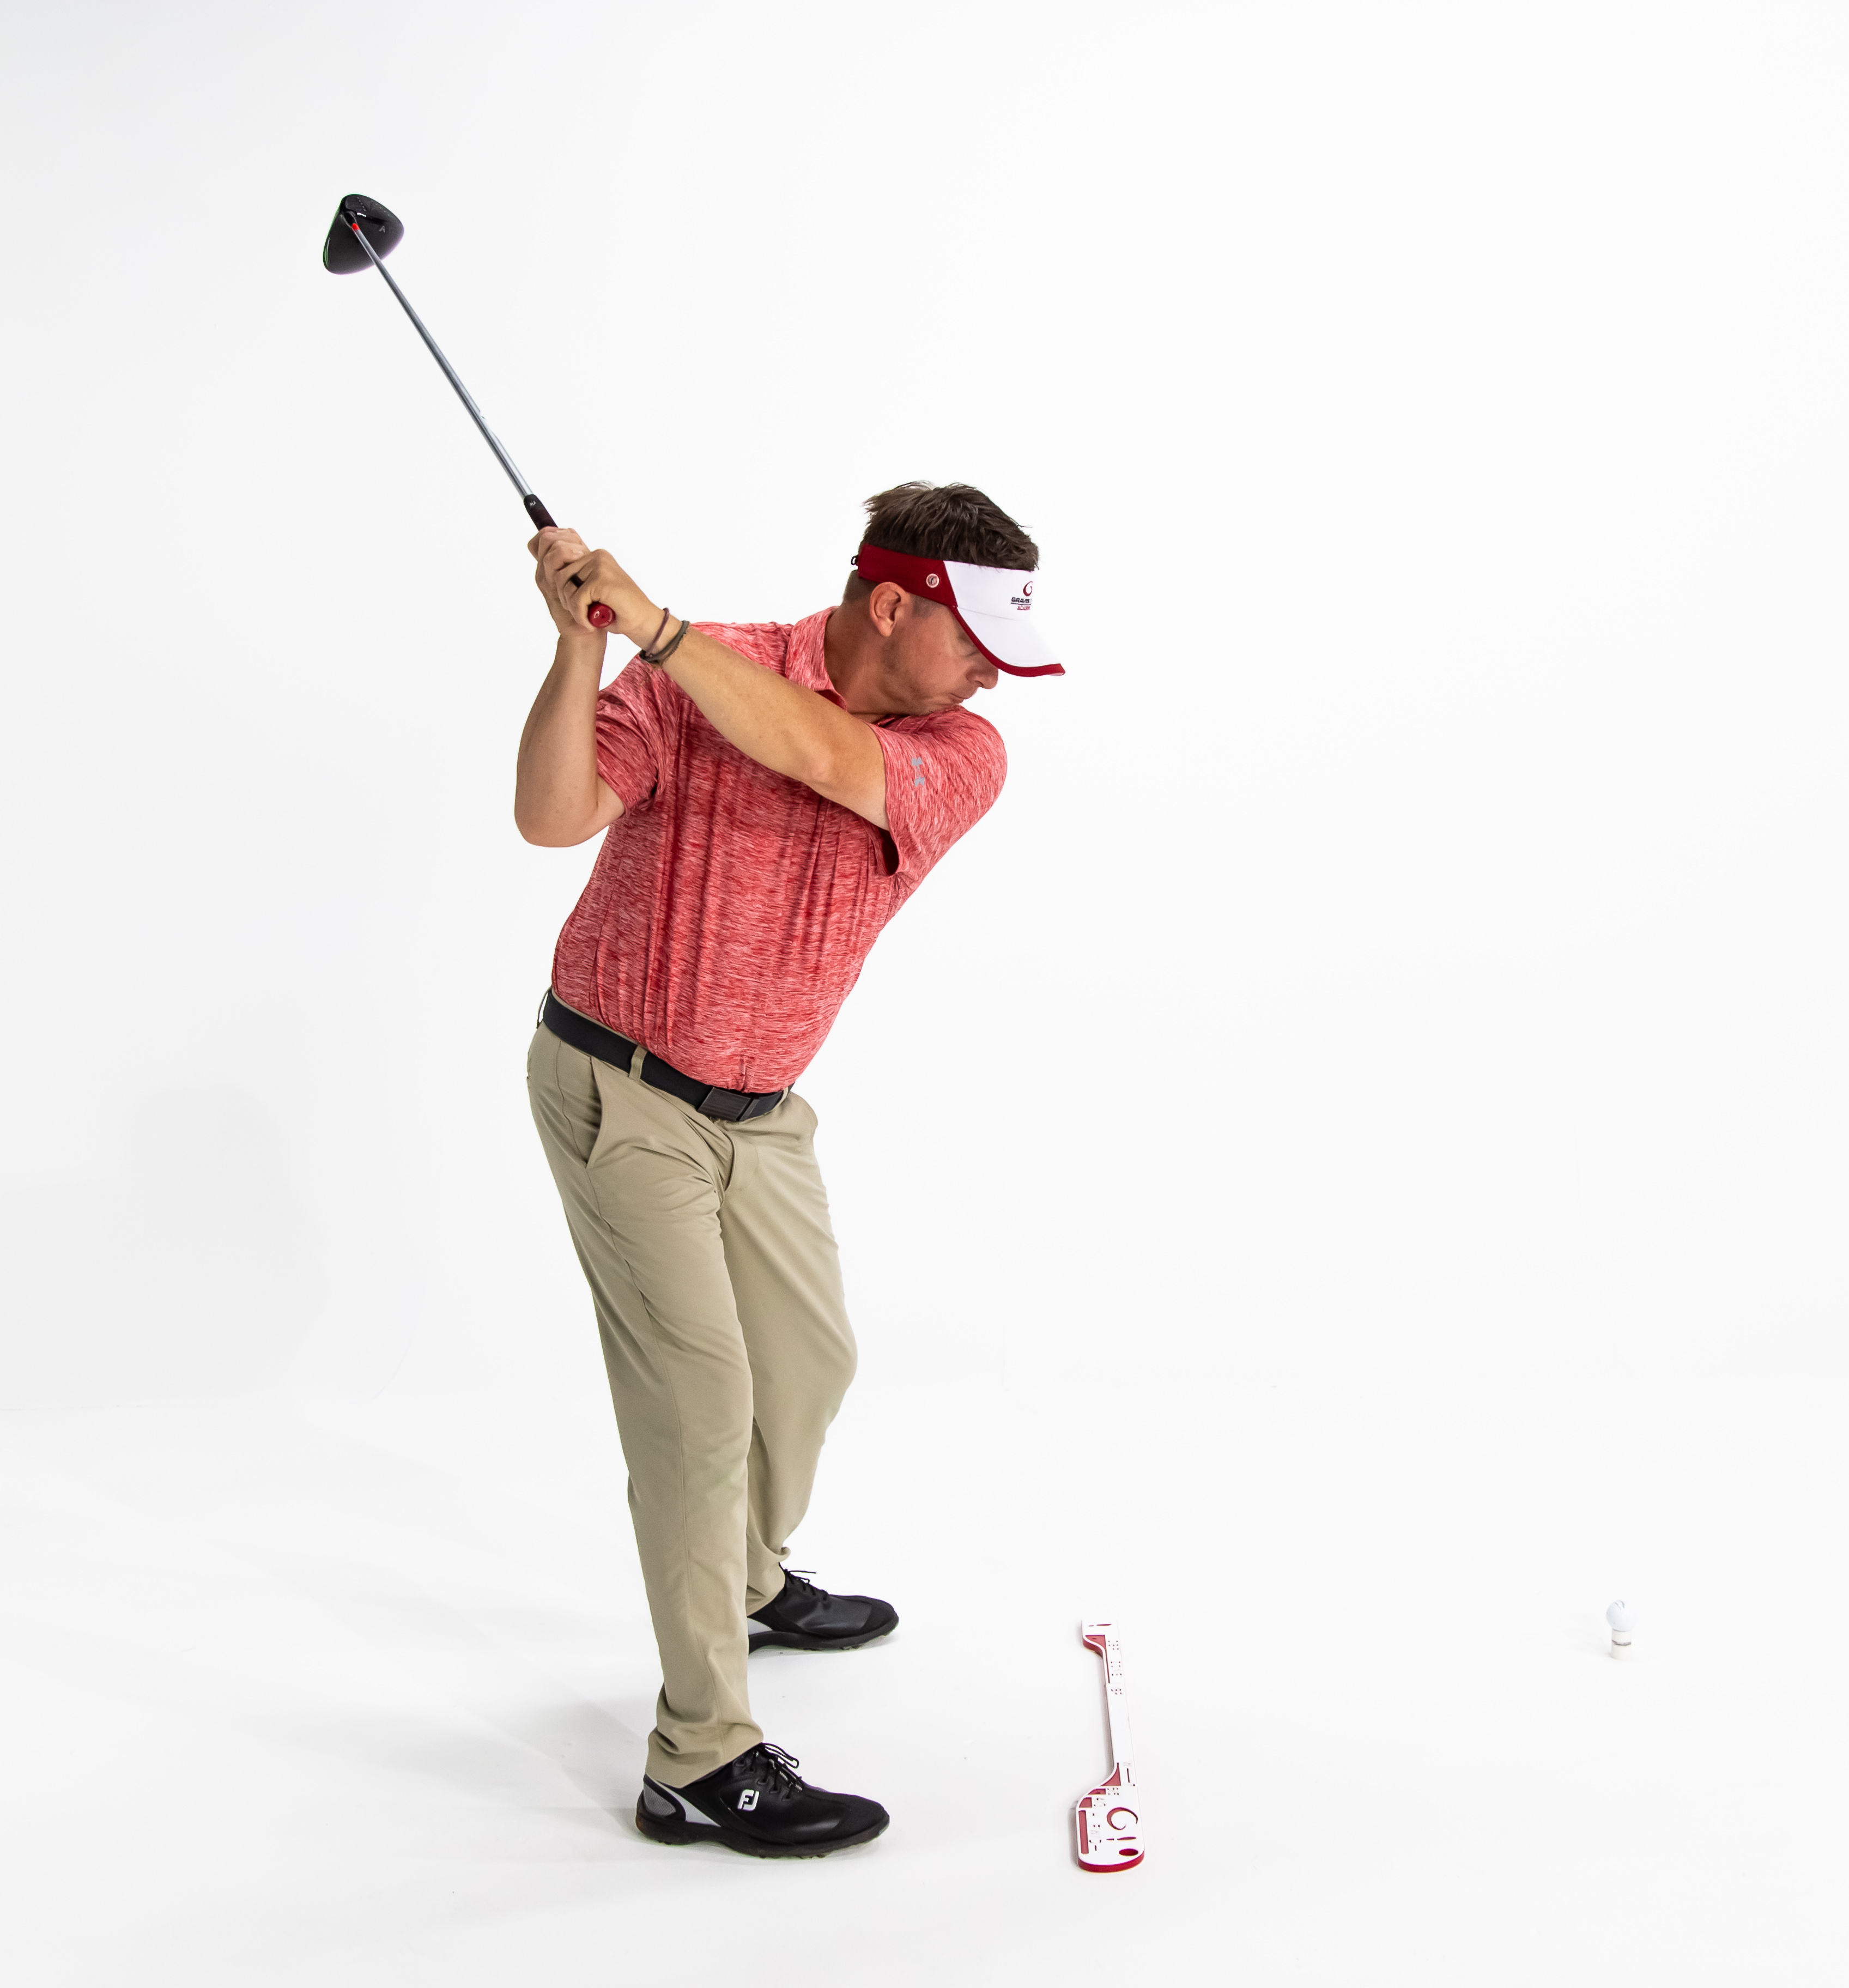 Single Plane Top of Backswing